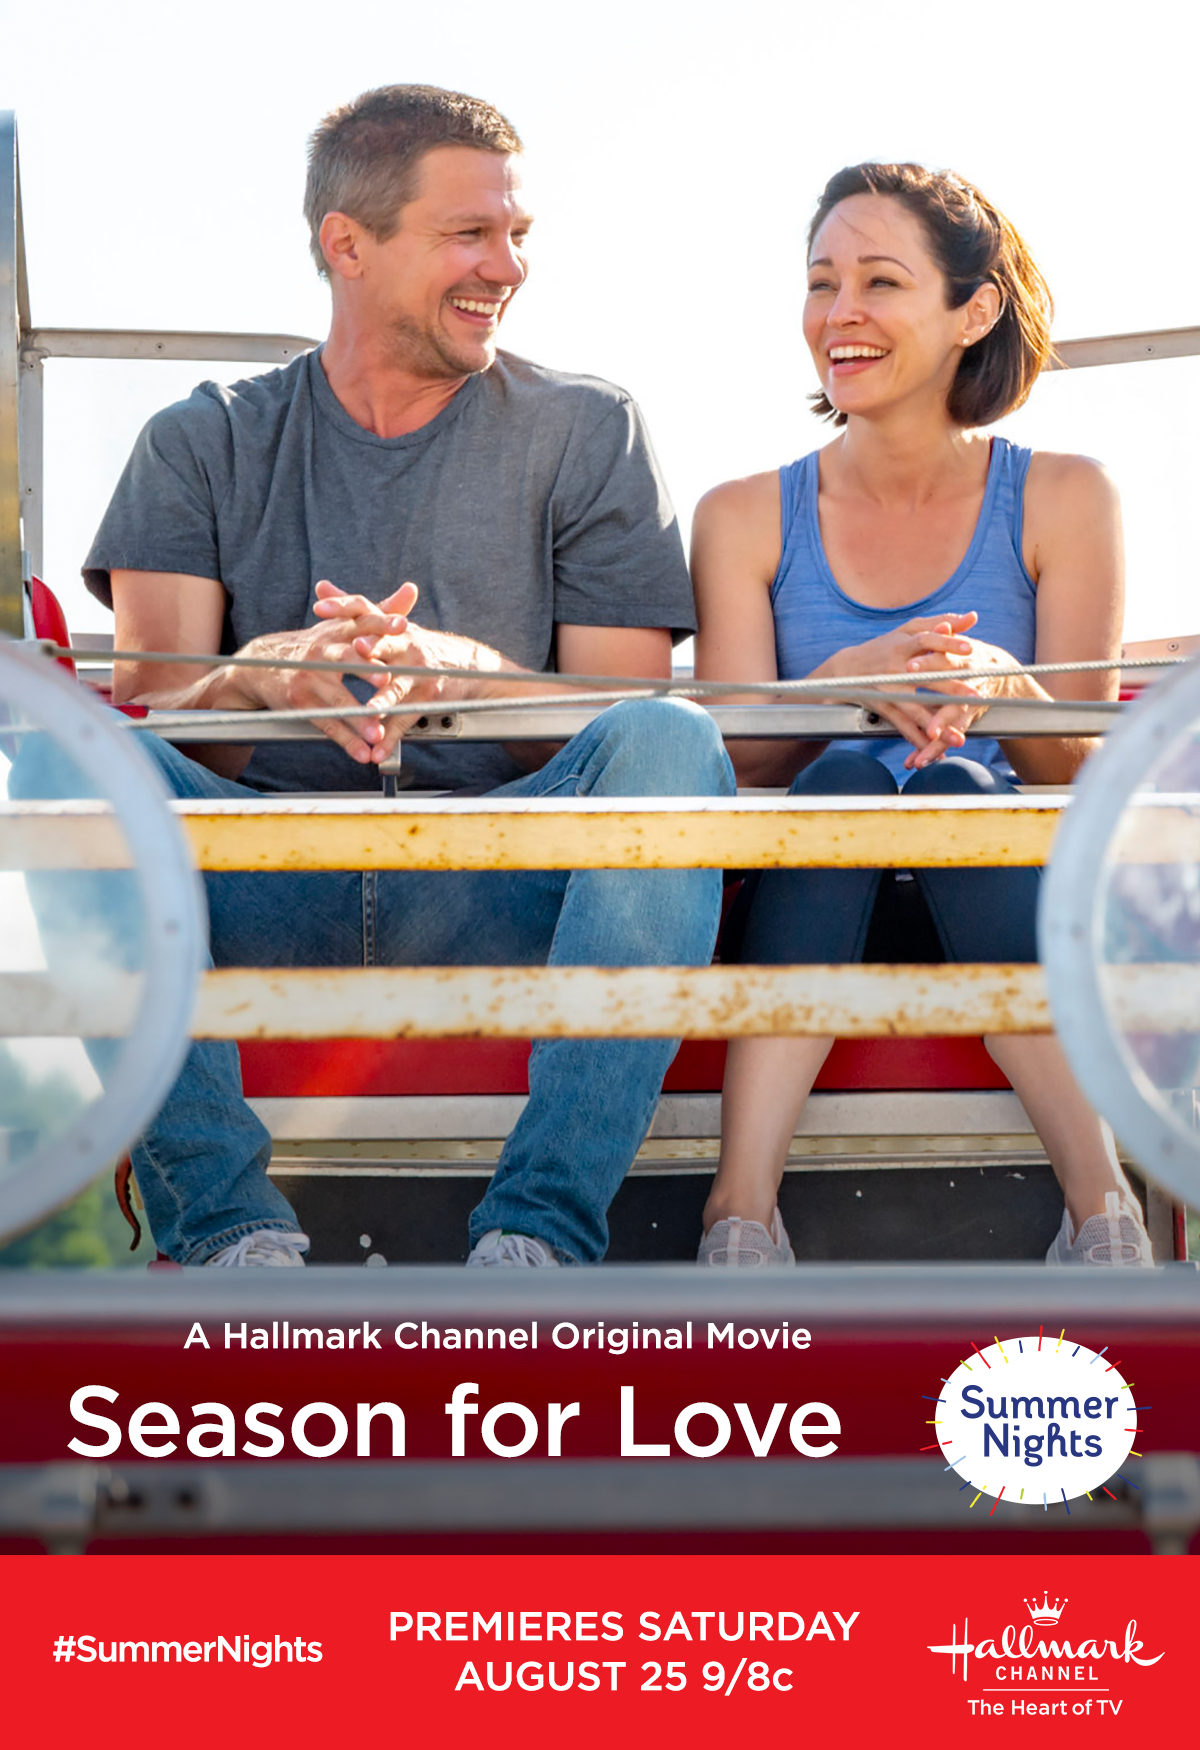 Autumn Reeser and Marc Blucas take a ride on the ferris wheel in ...